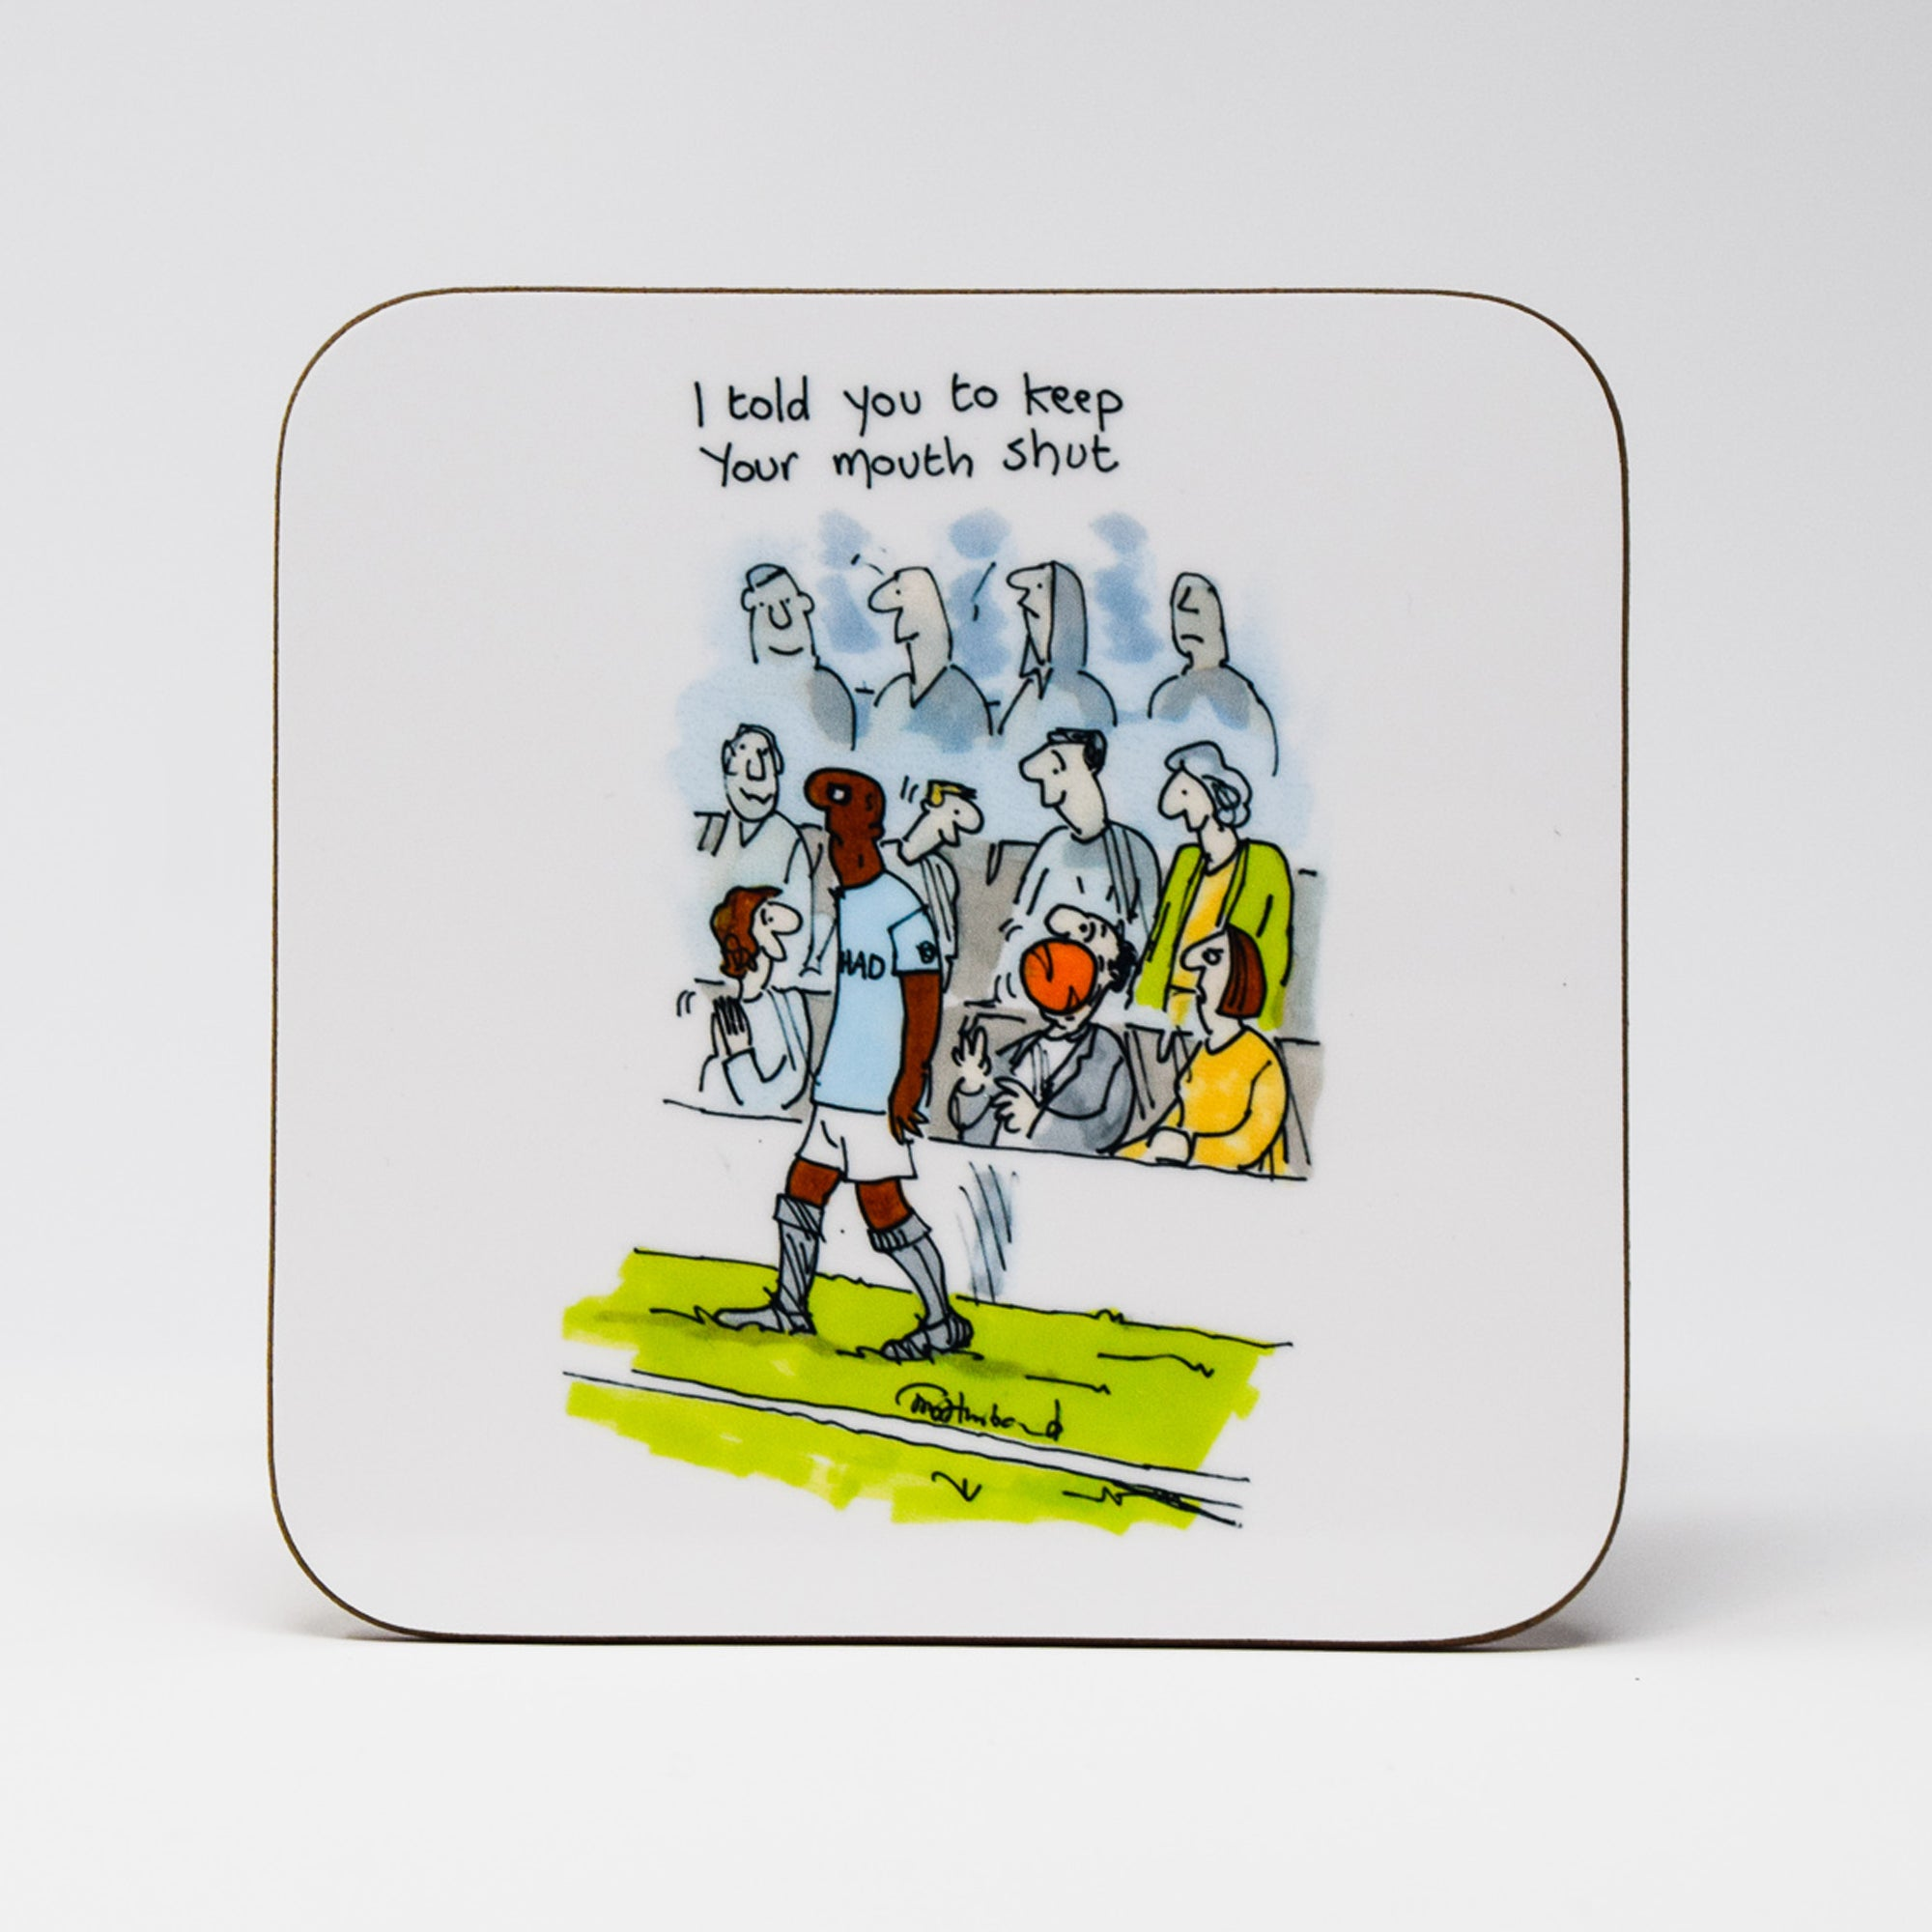 Ball in Mouth Coaster by Tony Husband